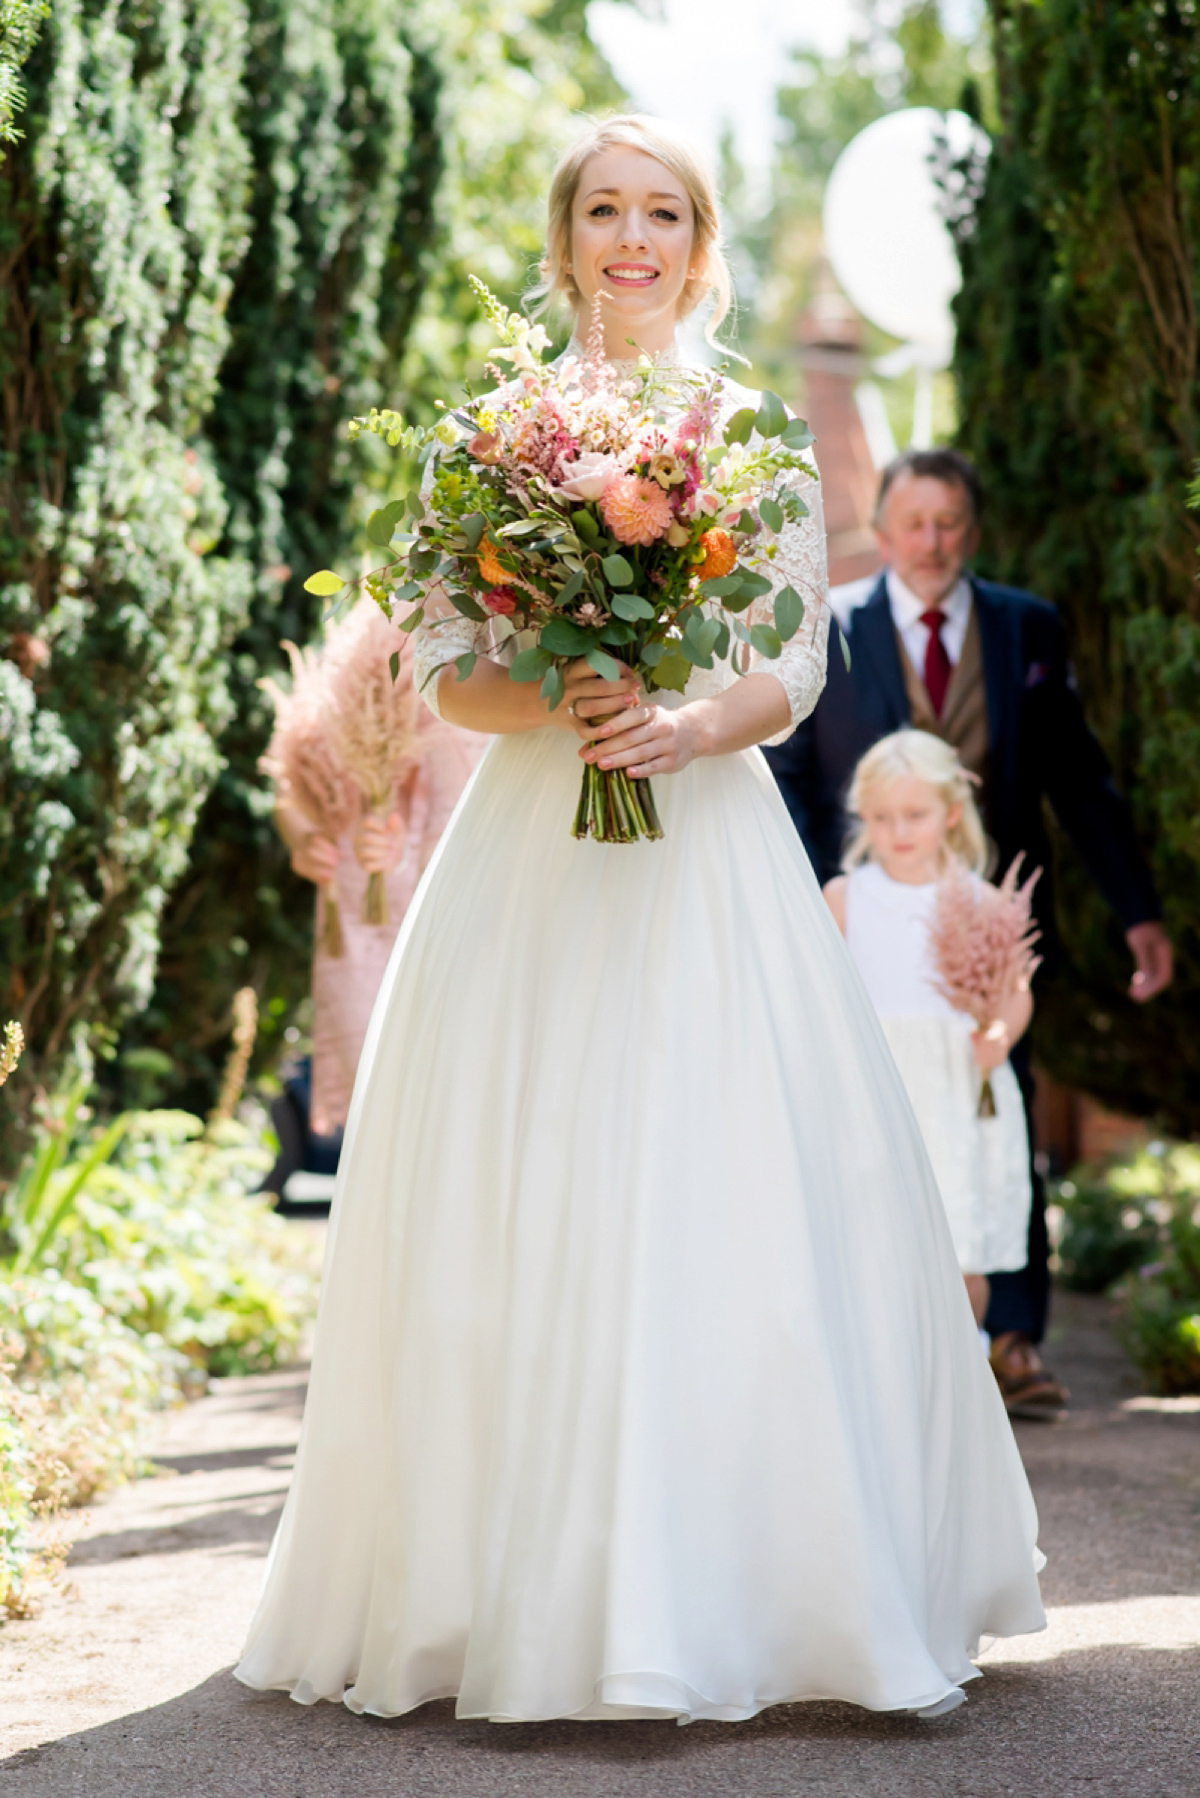 A Naomi Neoh Gown for a Whimsical Wedding in a Yurt (Weddings )